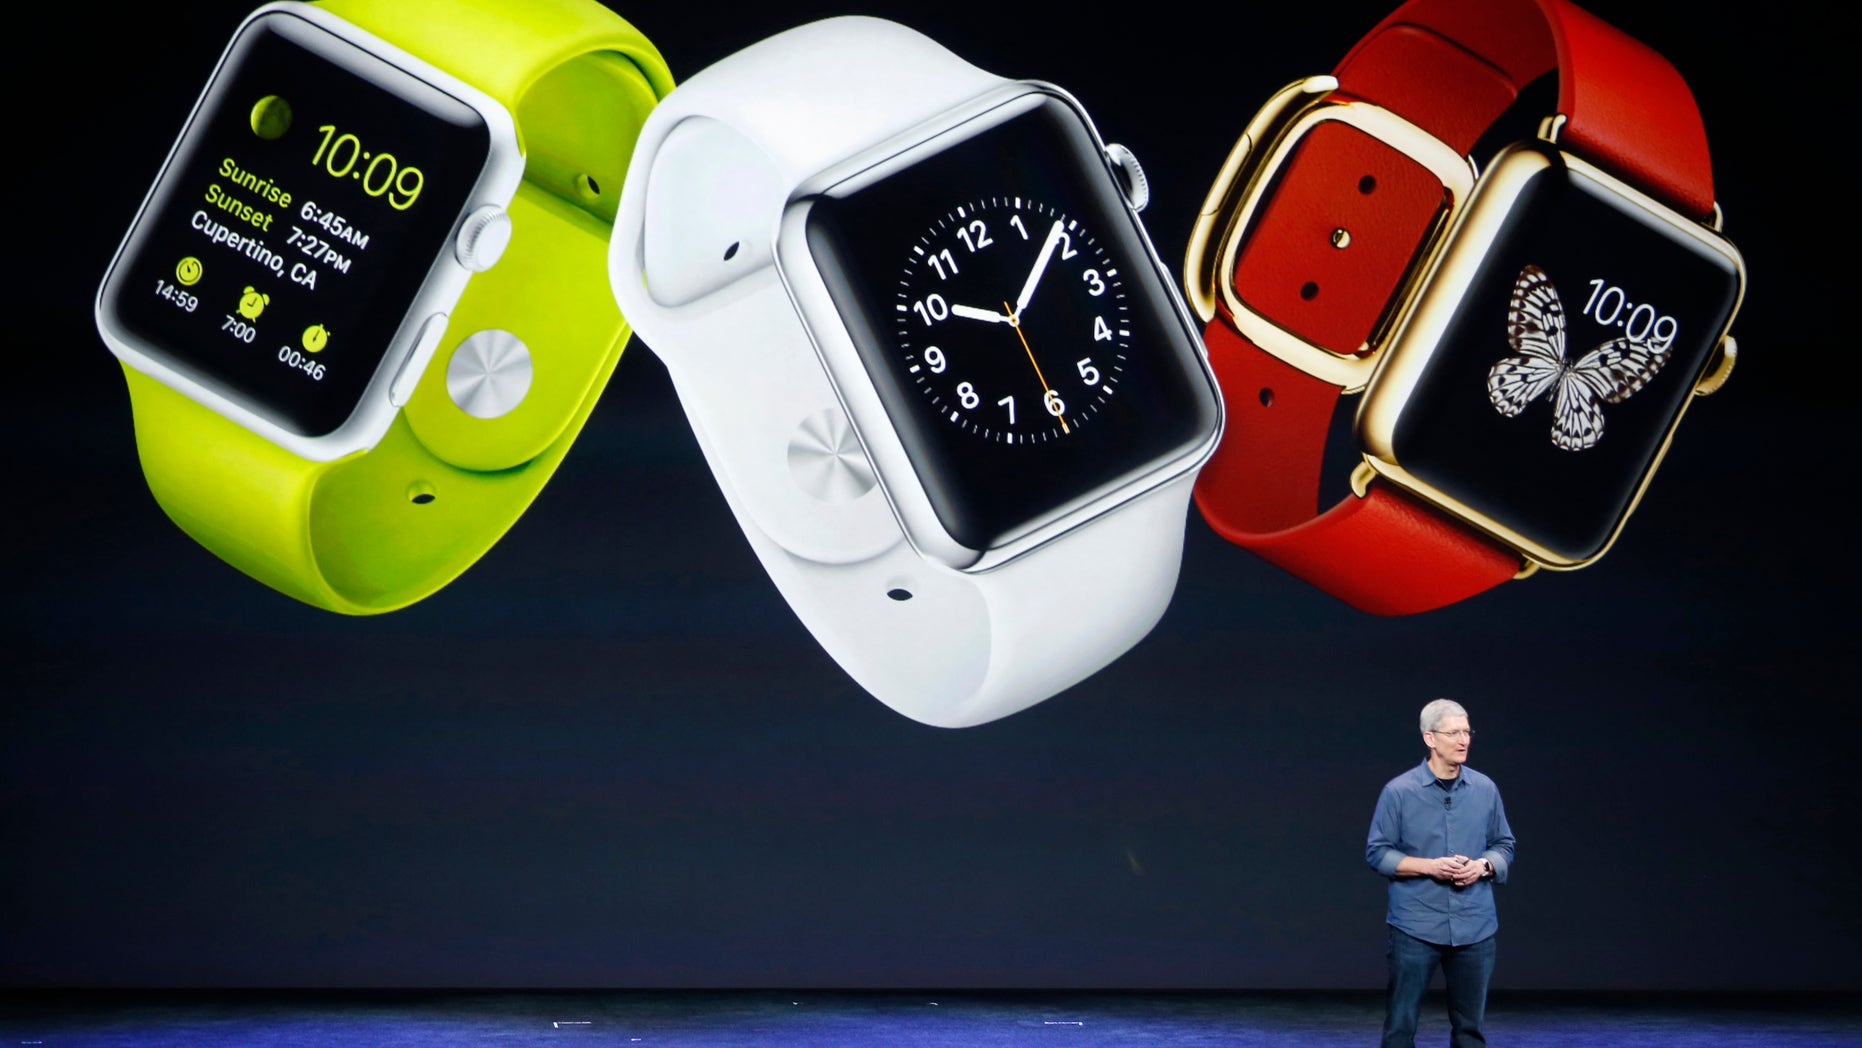 Apple CEO Tim Cook speaks about the Apple Watch during an Apple event at the Flint Center in Cupertino, California, September 9, 2014. REUTERS/Stephen Lam (United States - Tags: SCIENCE TECHNOLOGY BUSINESS TPX IMAGES OF THE DAY) - RTR45KRM